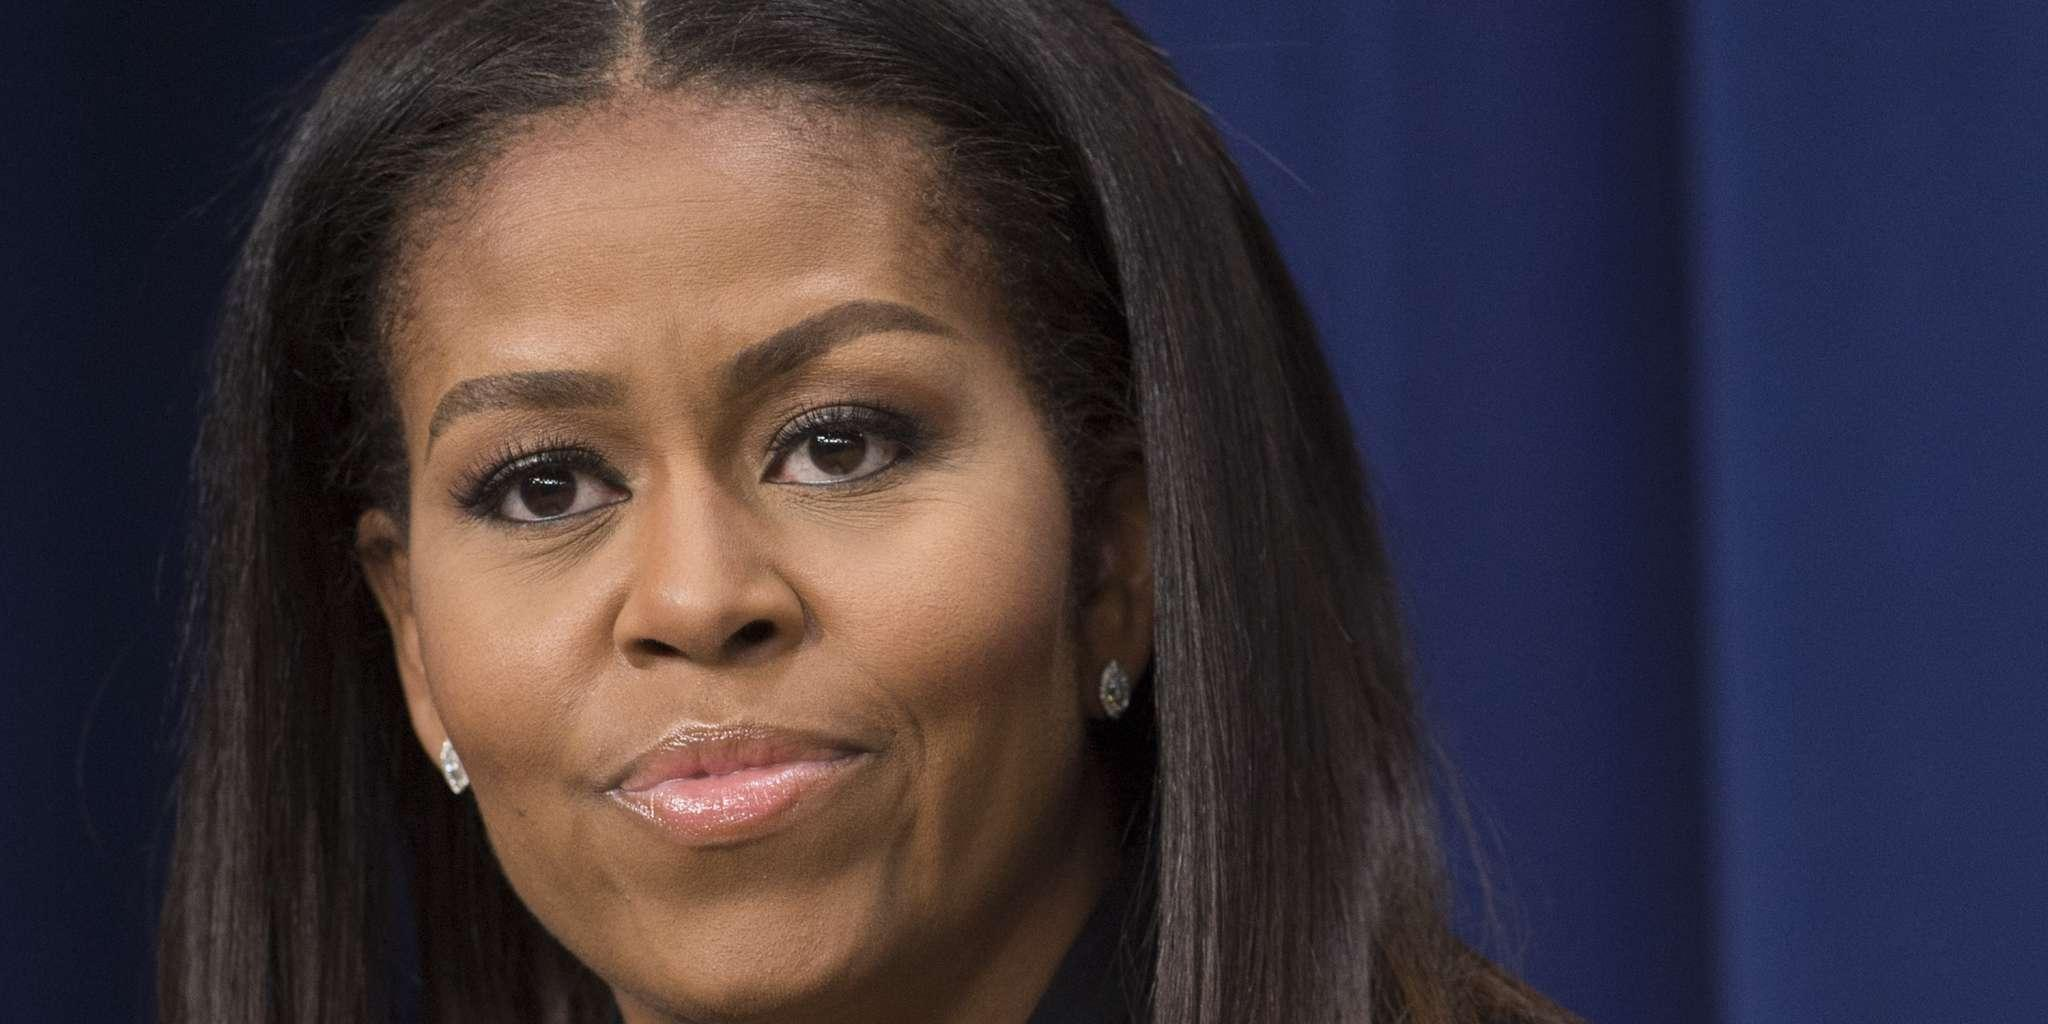 Michelle Obama Shows Off Her Impressive Abs In Cropped T-Shirt On National Signing Day